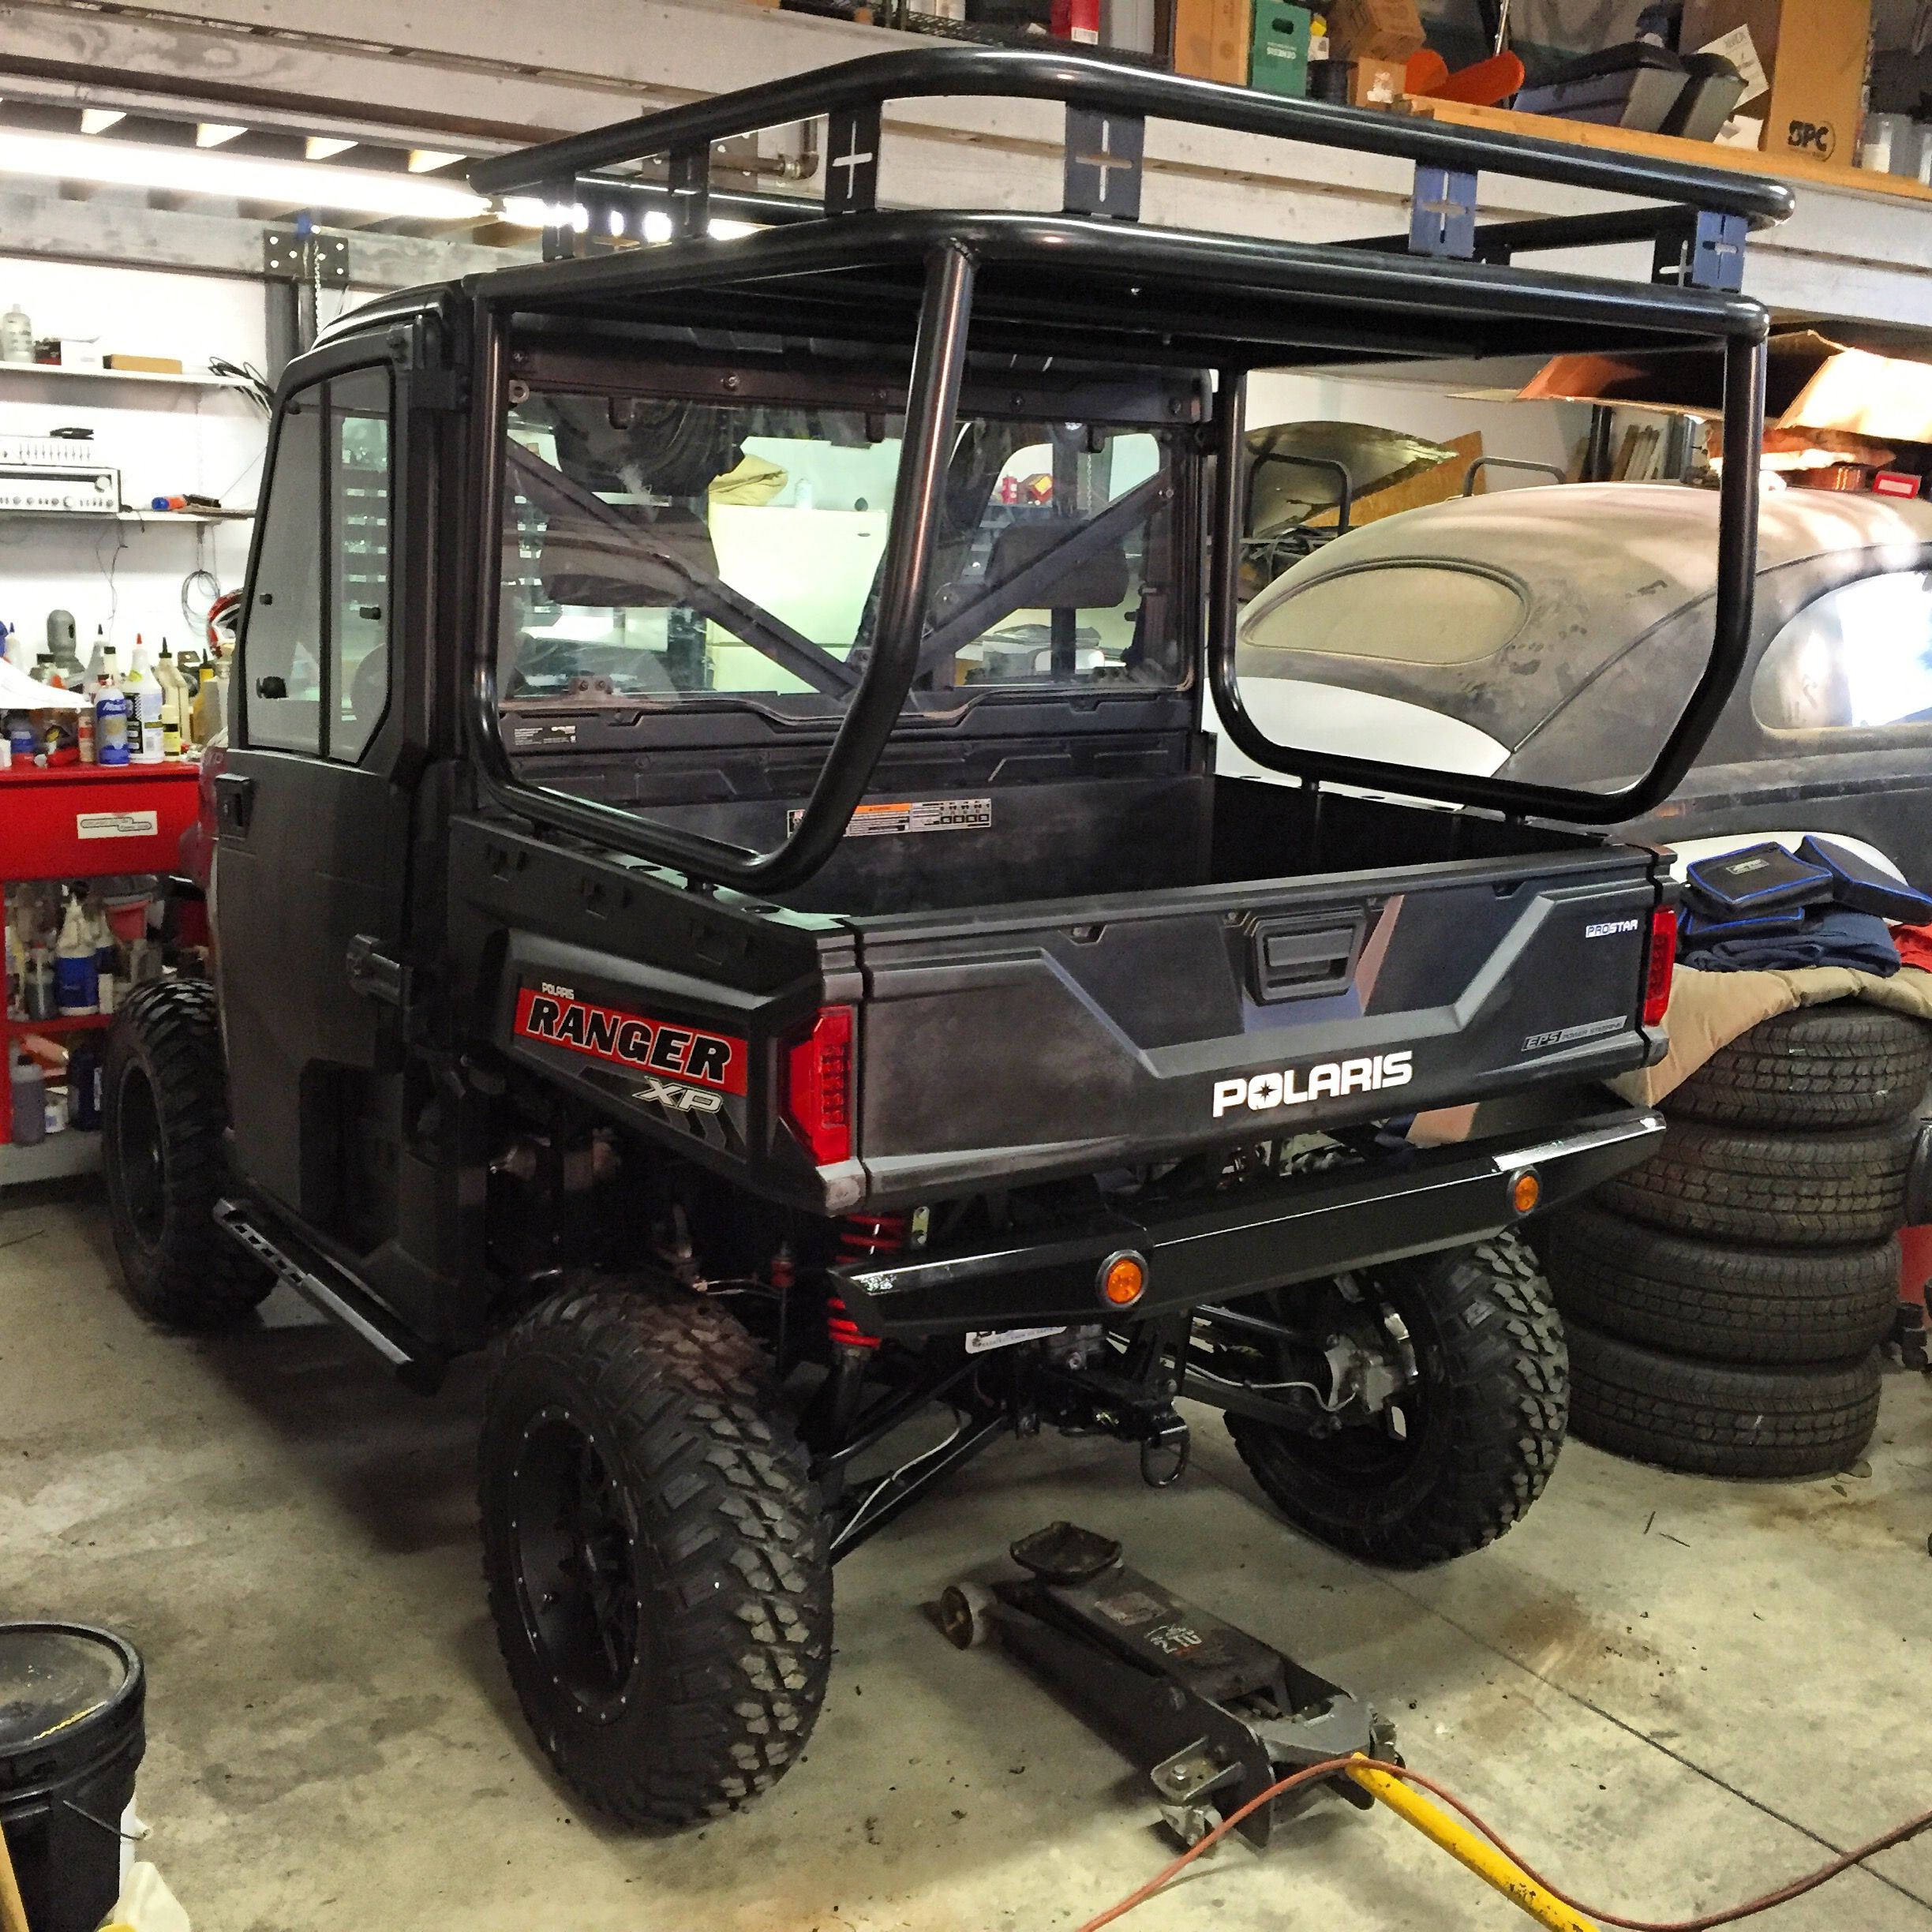 ROLL CAGE ROOF AND SAFARI RACK INSTALLED ON A POLARIS RANGER 900XP